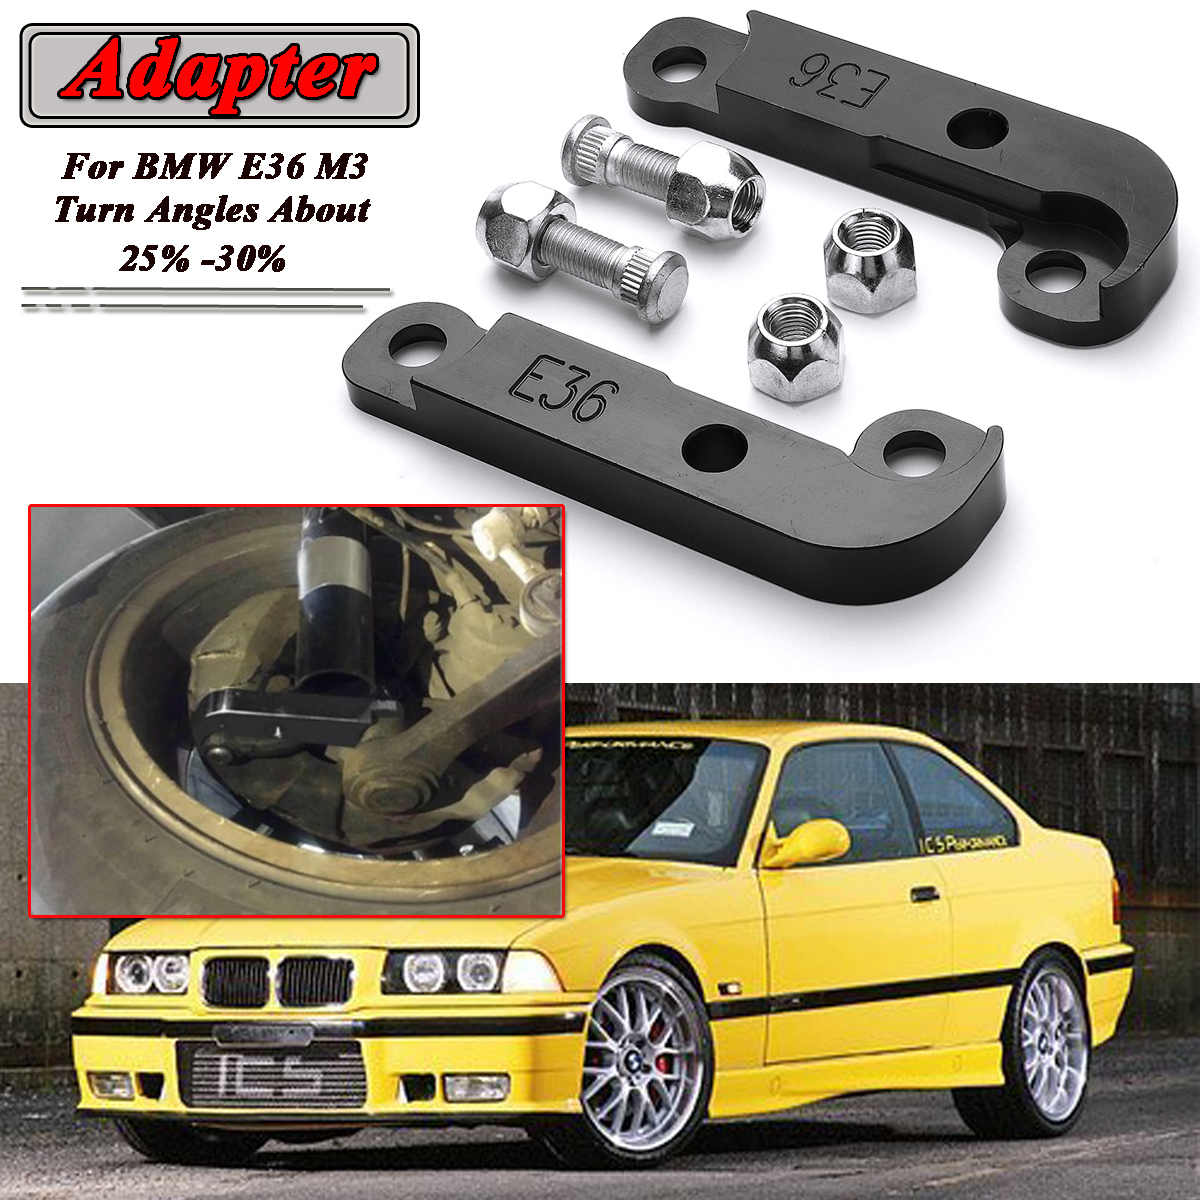 2pcs red black adapter increasing turn angles about 25 30 drift lock kit for bmw e36 m3 tuning drift power adapters mounting in axle parts from  [ 1200 x 1200 Pixel ]